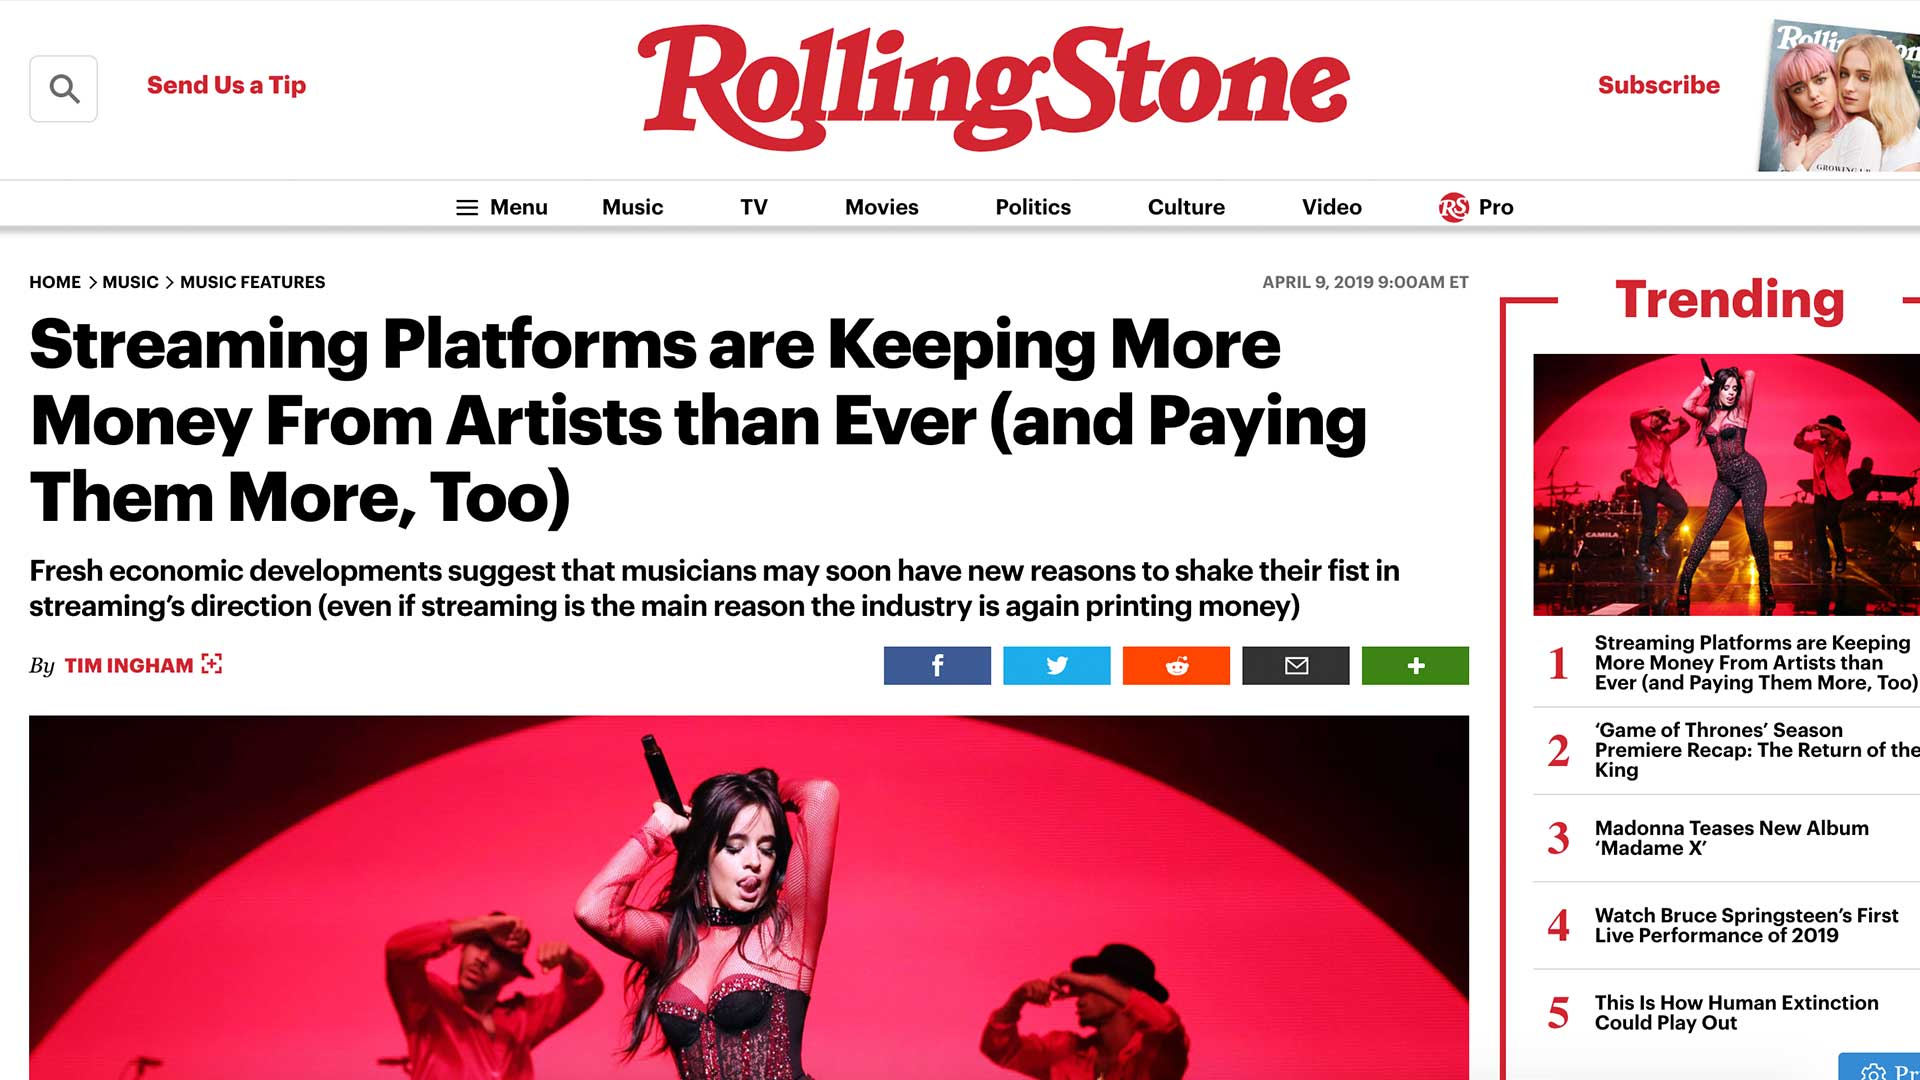 Fairness Rocks News Streaming Platforms are Keeping More Money From Artists than Ever (and Paying Them More, Too)